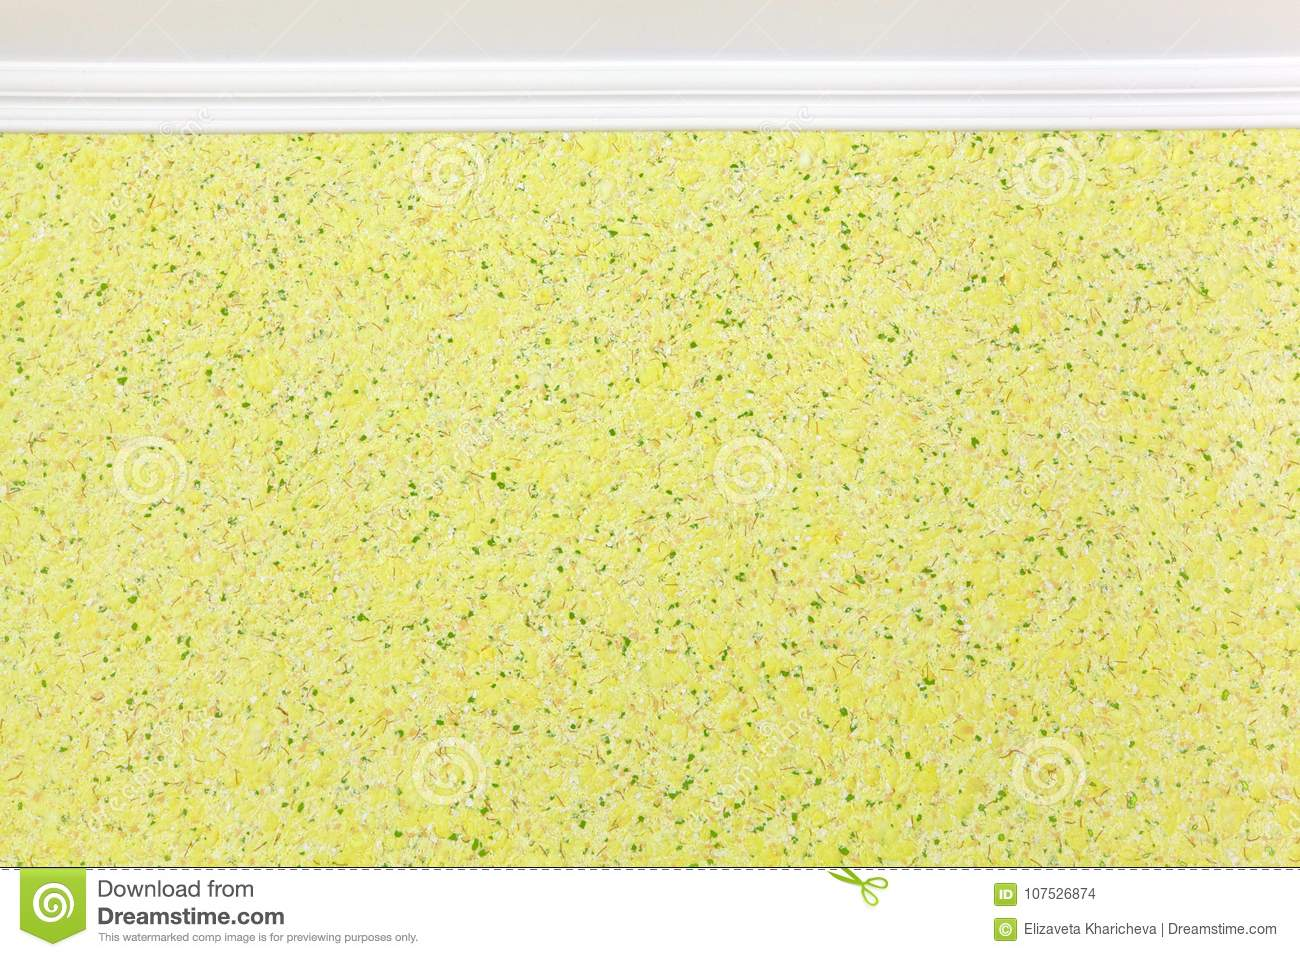 Molding And Wall With Yellow Liquid Wallpaper. Decorative, Textured ...